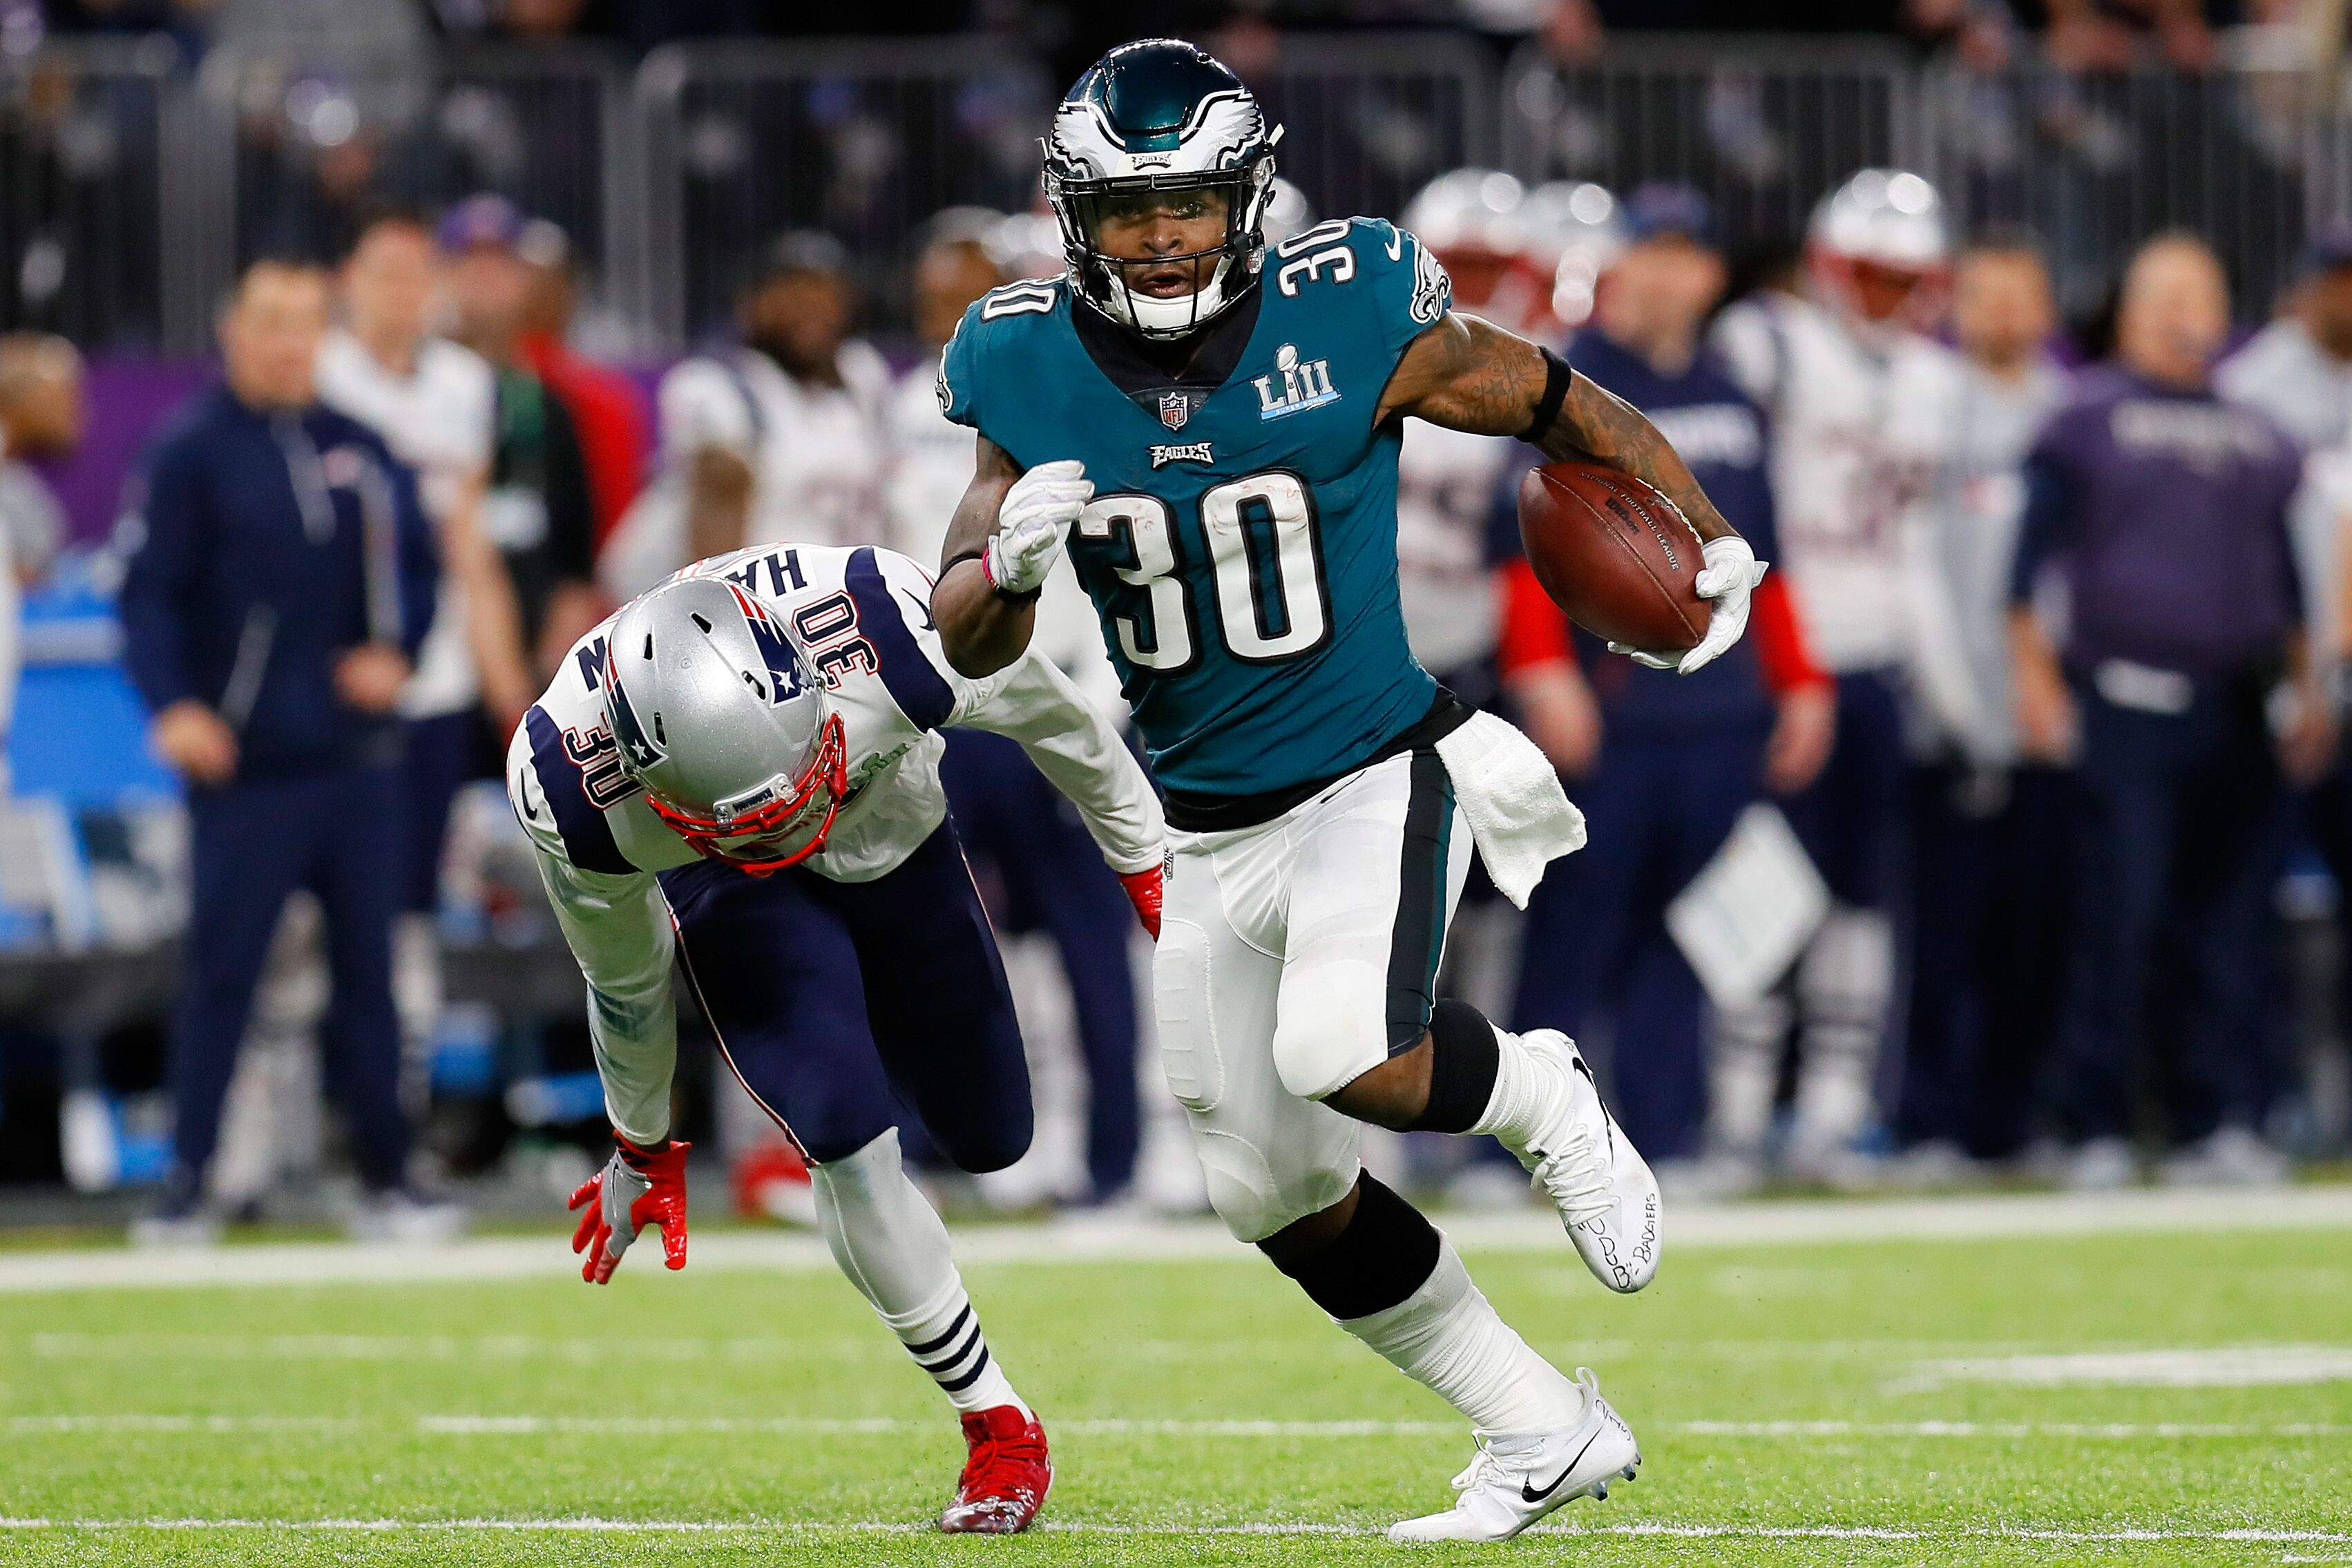 96a9b5cf0 Is Corey Clement the future workhorse of the Eagles backfield